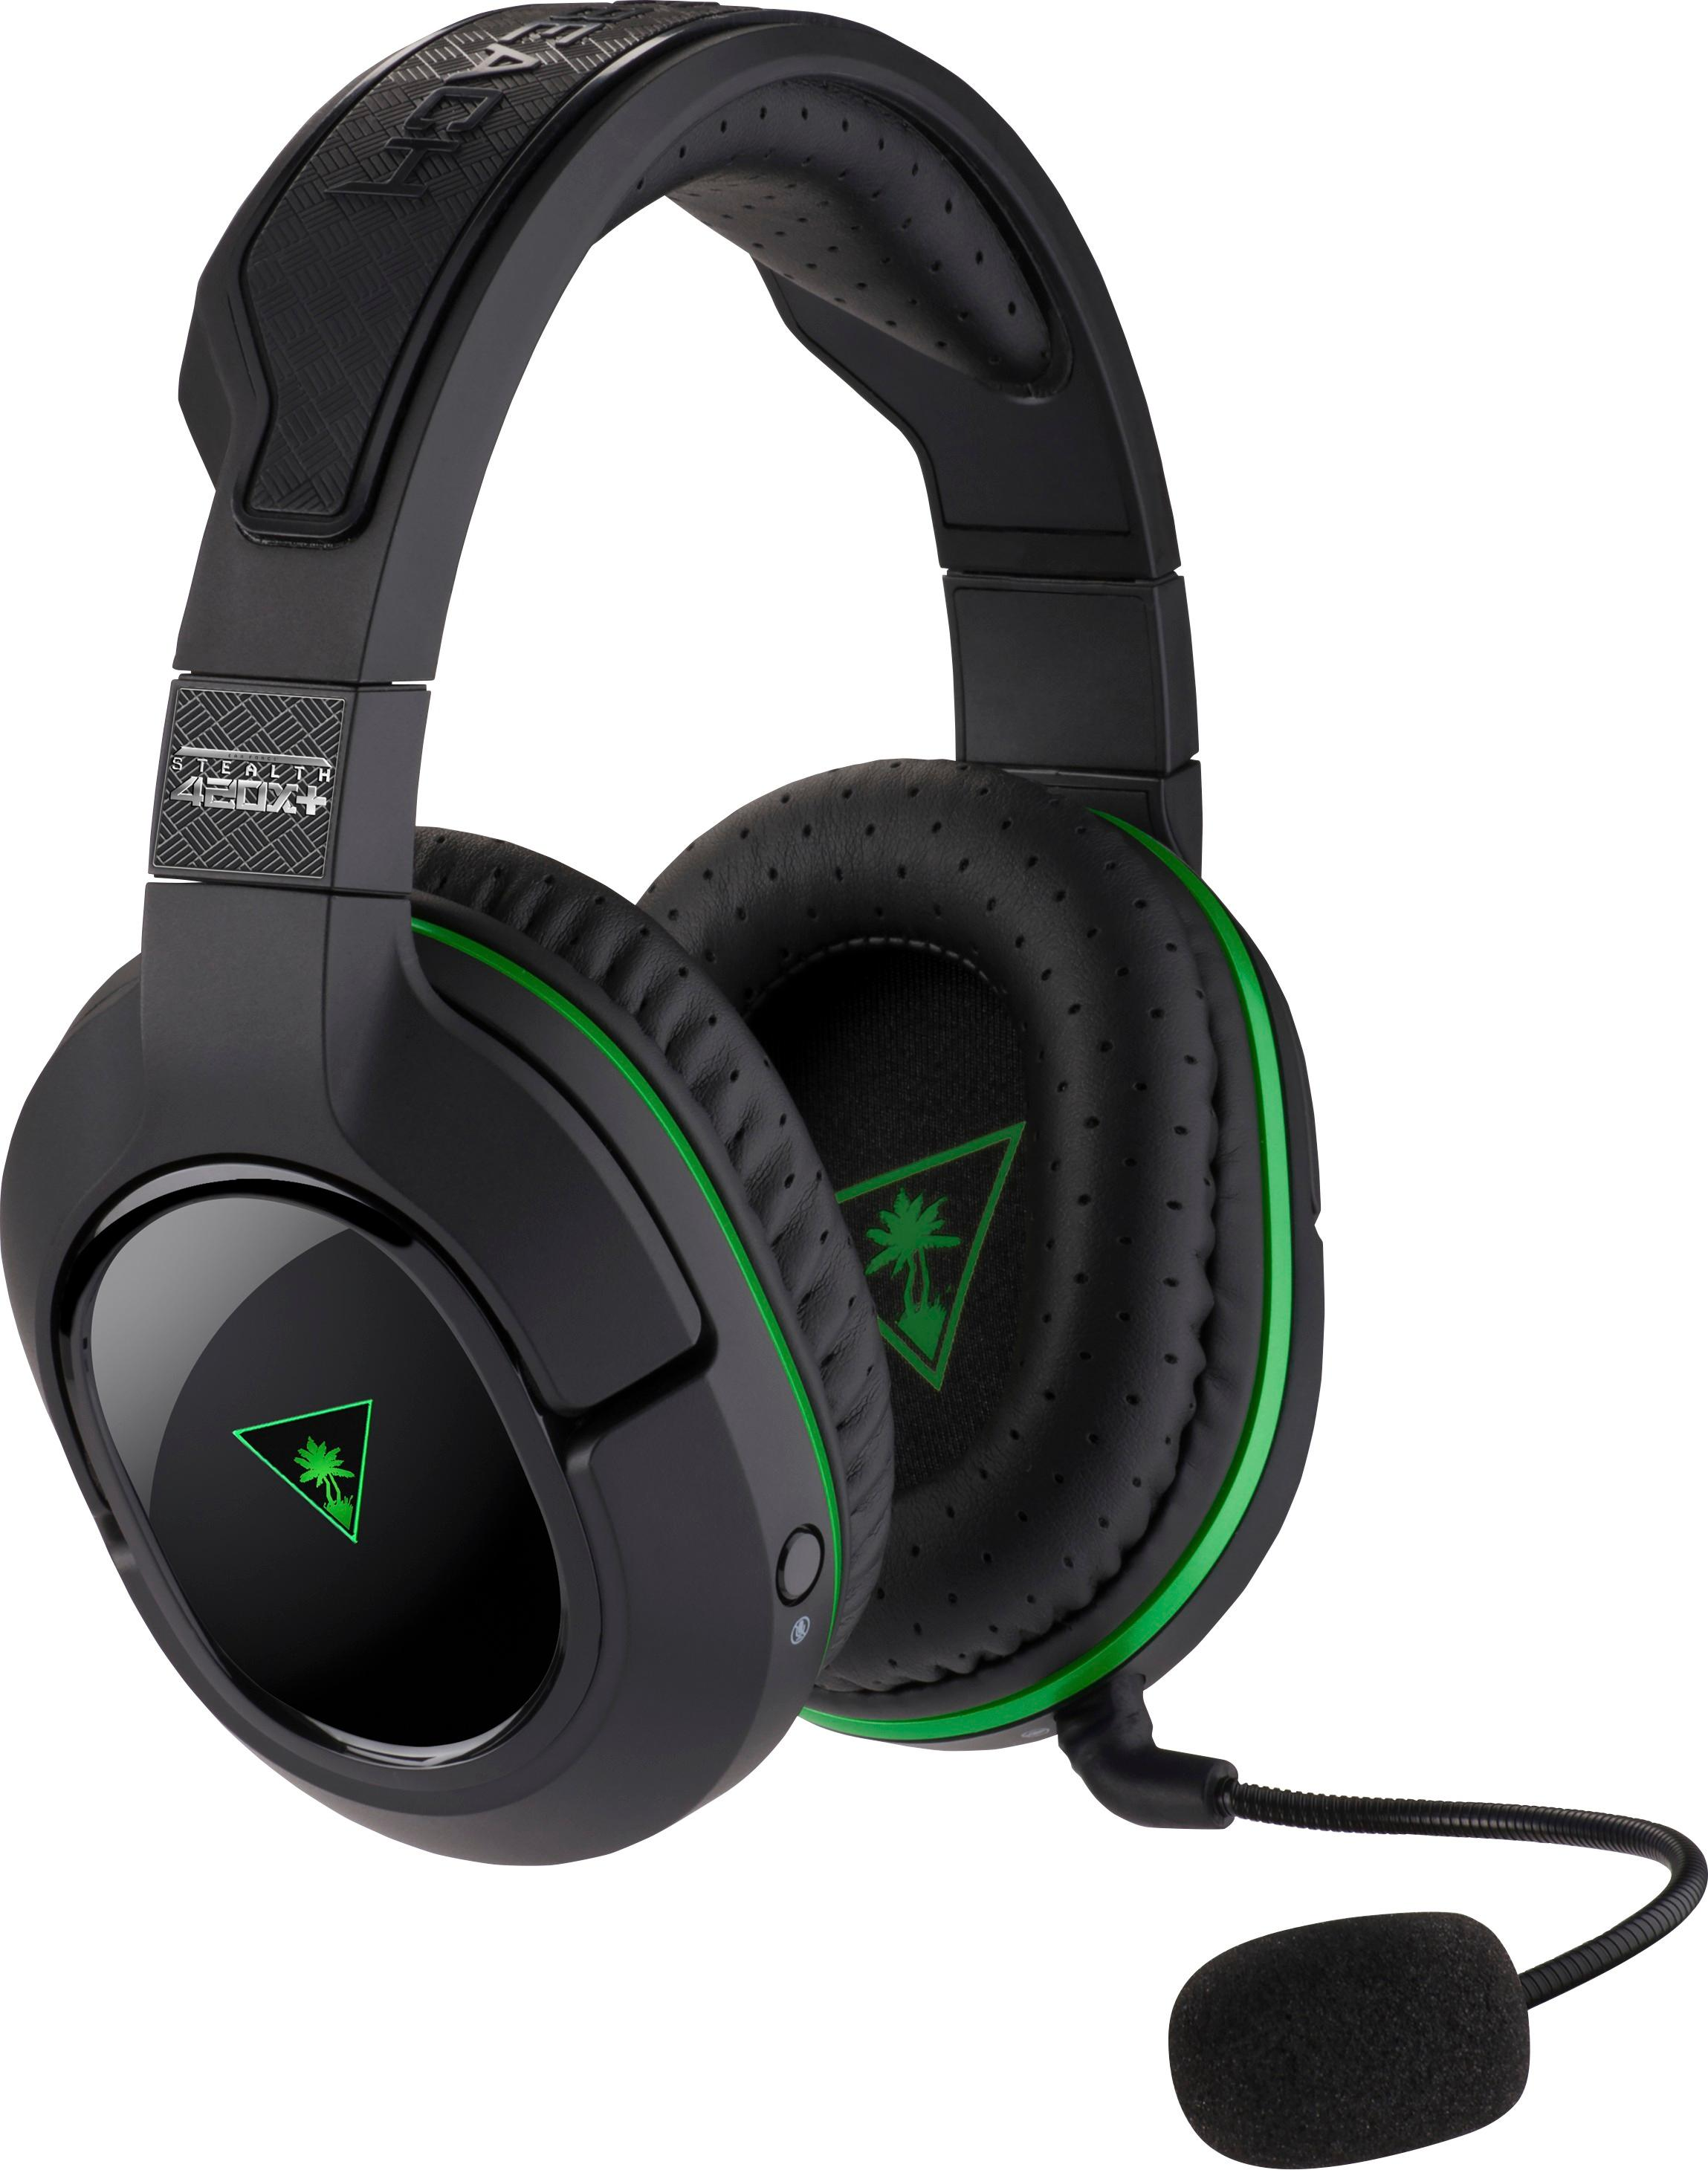 Turtle Beach Ear Force Stealth 420X Wireless Gaming